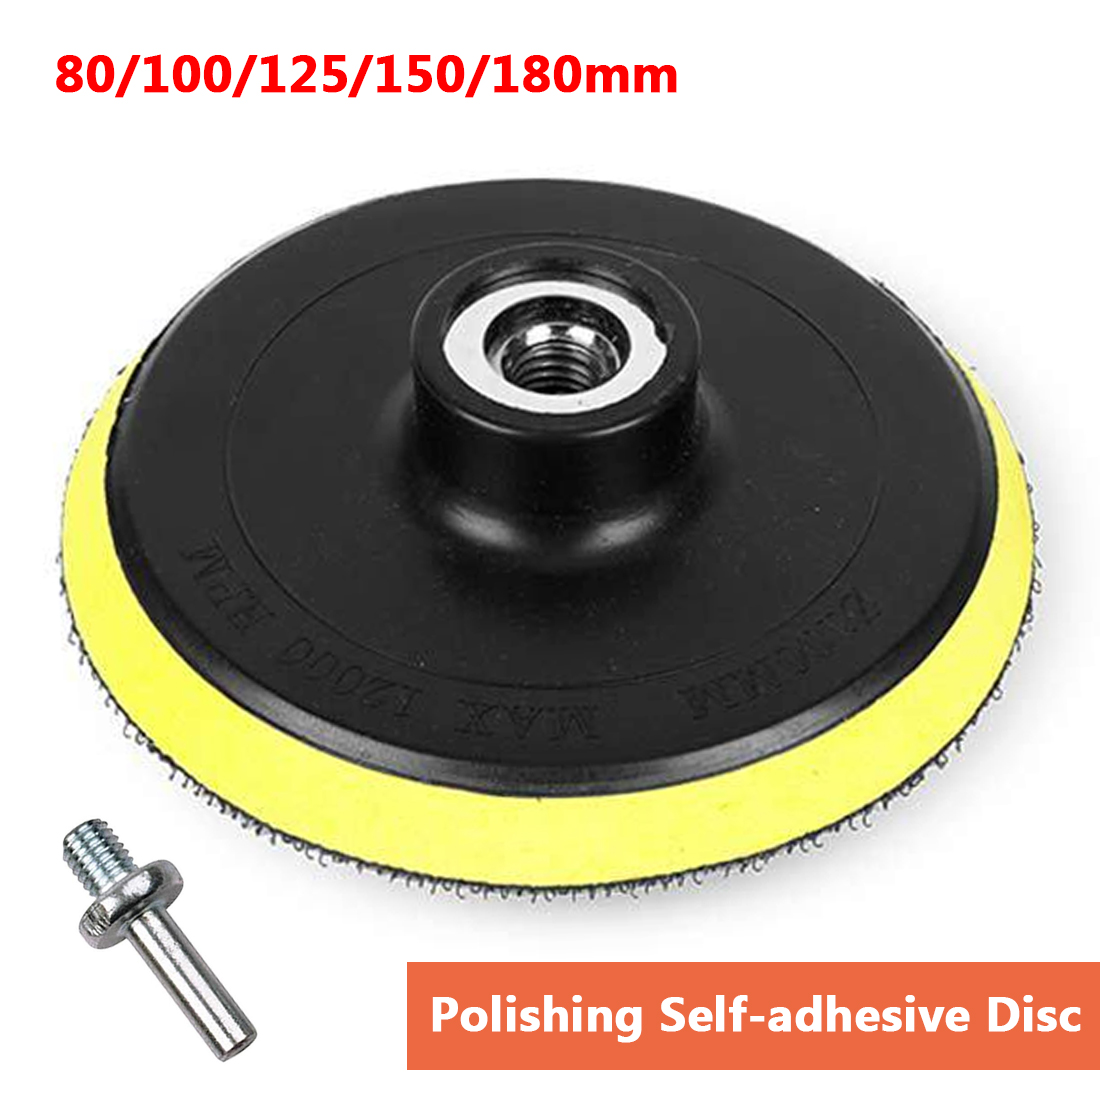 Special Section 80-180mm Polishing Self-adhesive Disc Polishing Sandpaper Sheet Adhesive Disc Chuck Angle Grinder Sticky Plate For Car 2019 Official Abrasive Tools